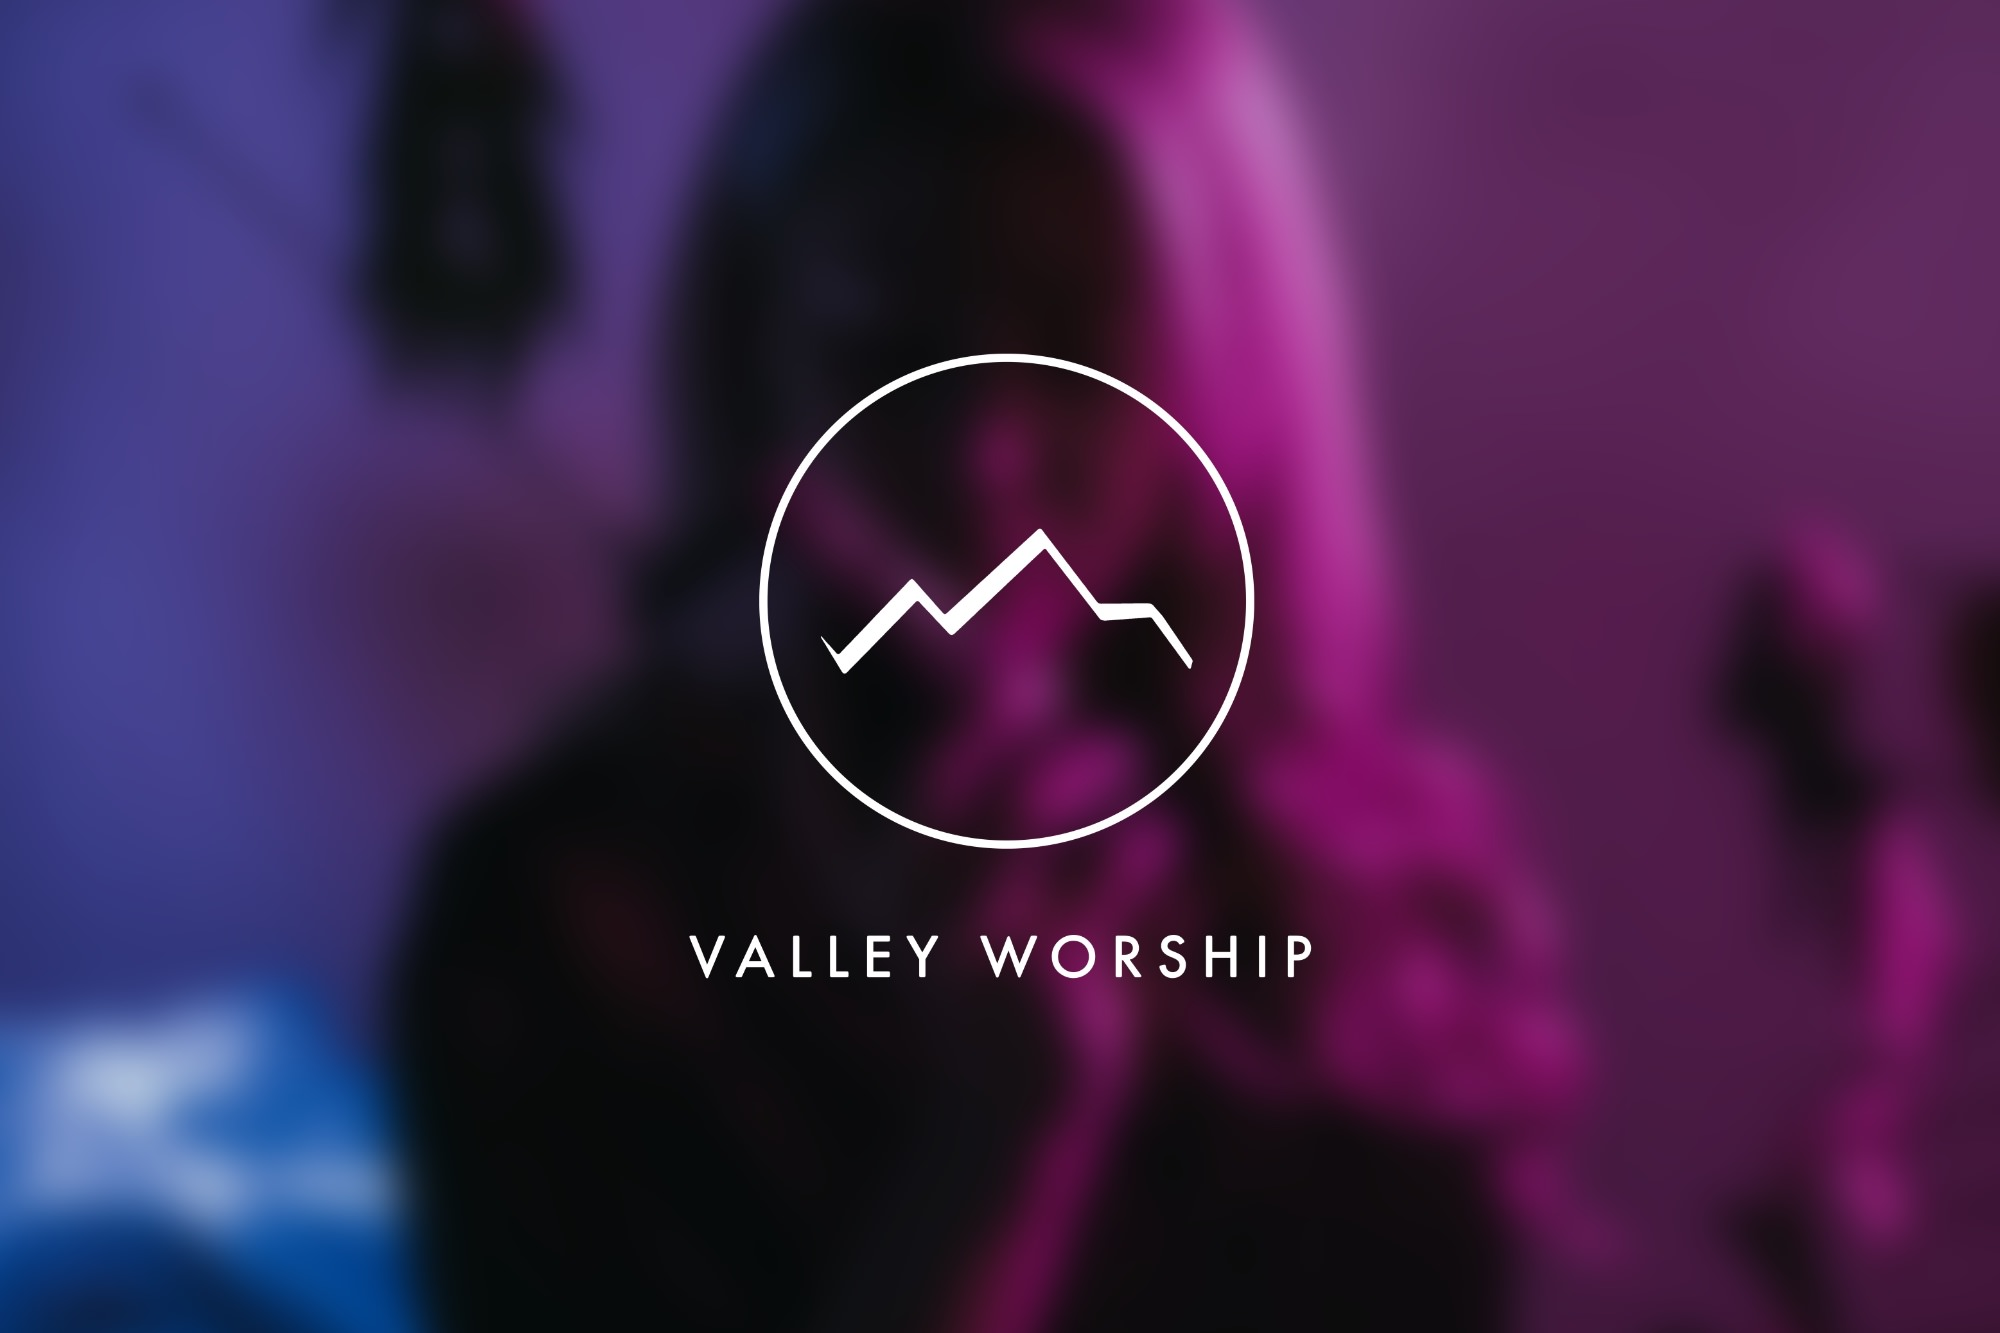 Valley Worship